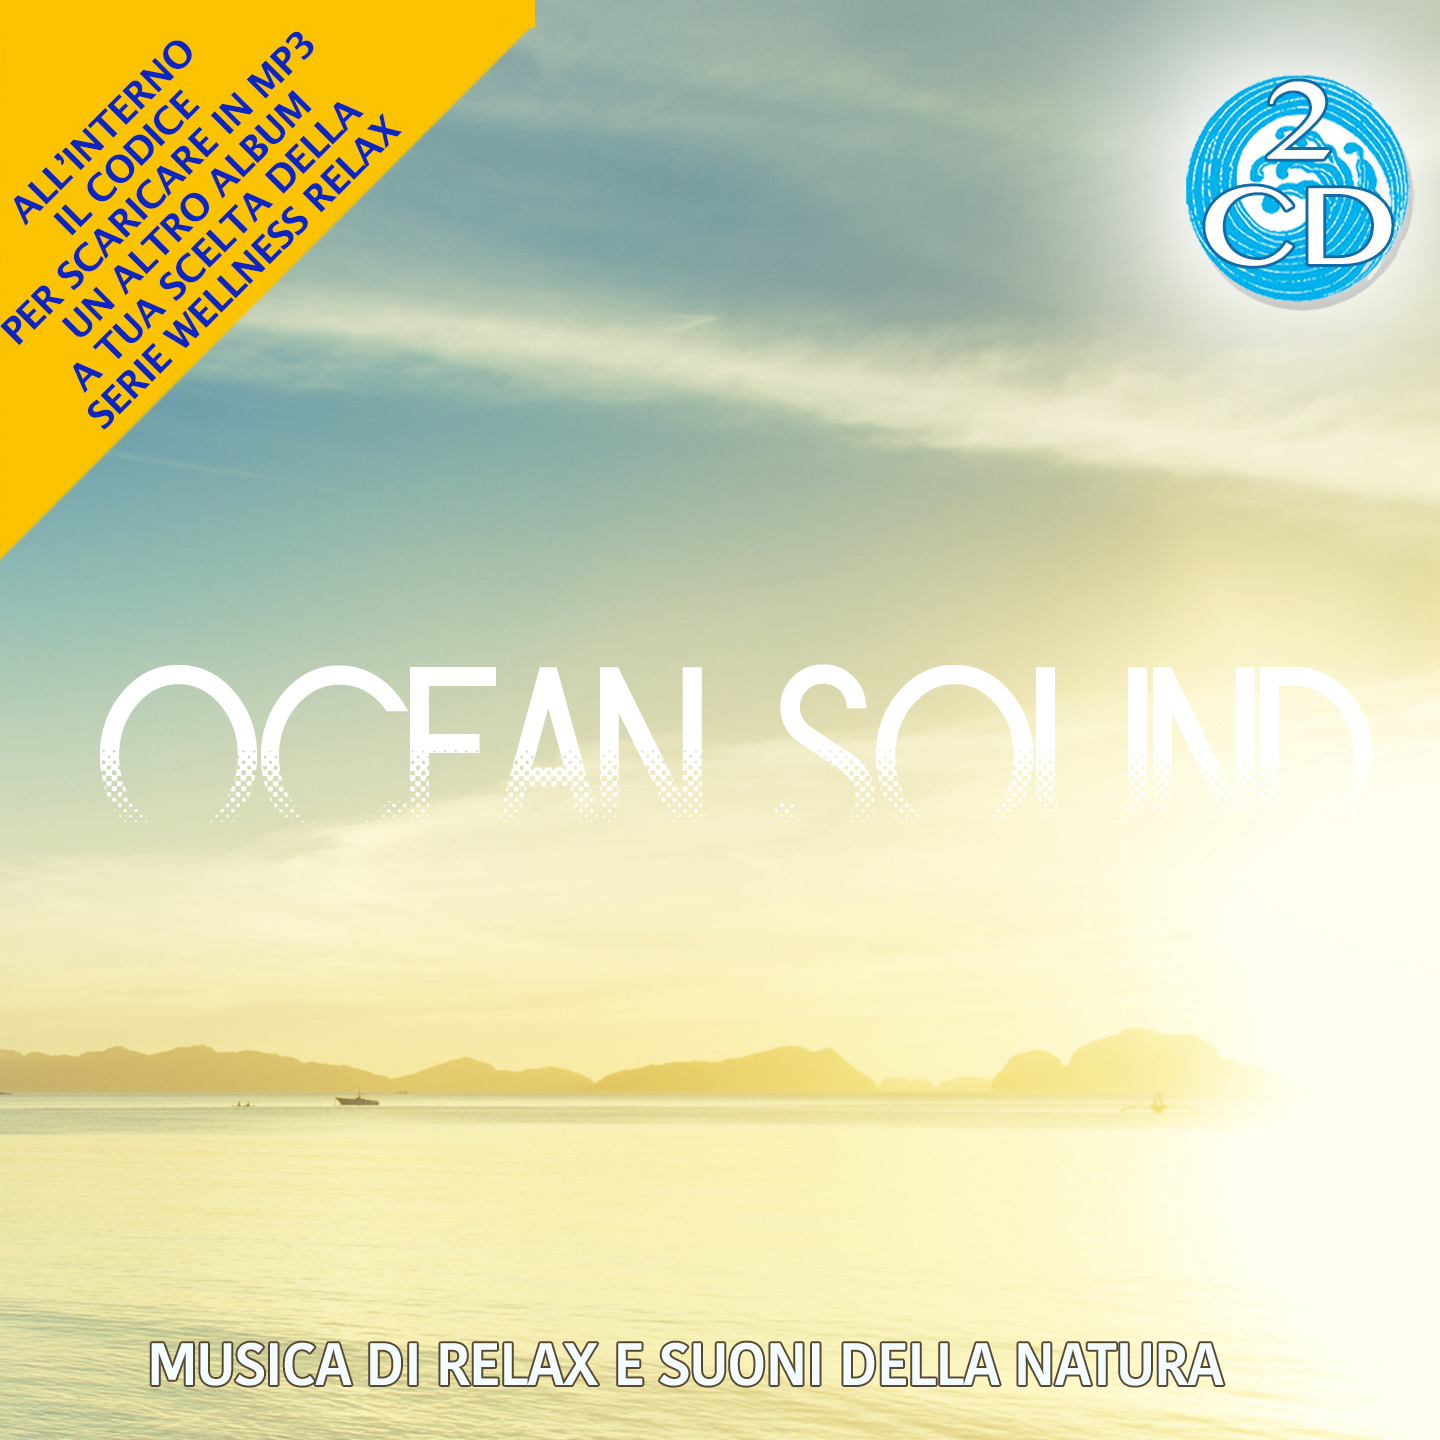 4 - Ocean Sound: Relaxing Music with Nature Sounds